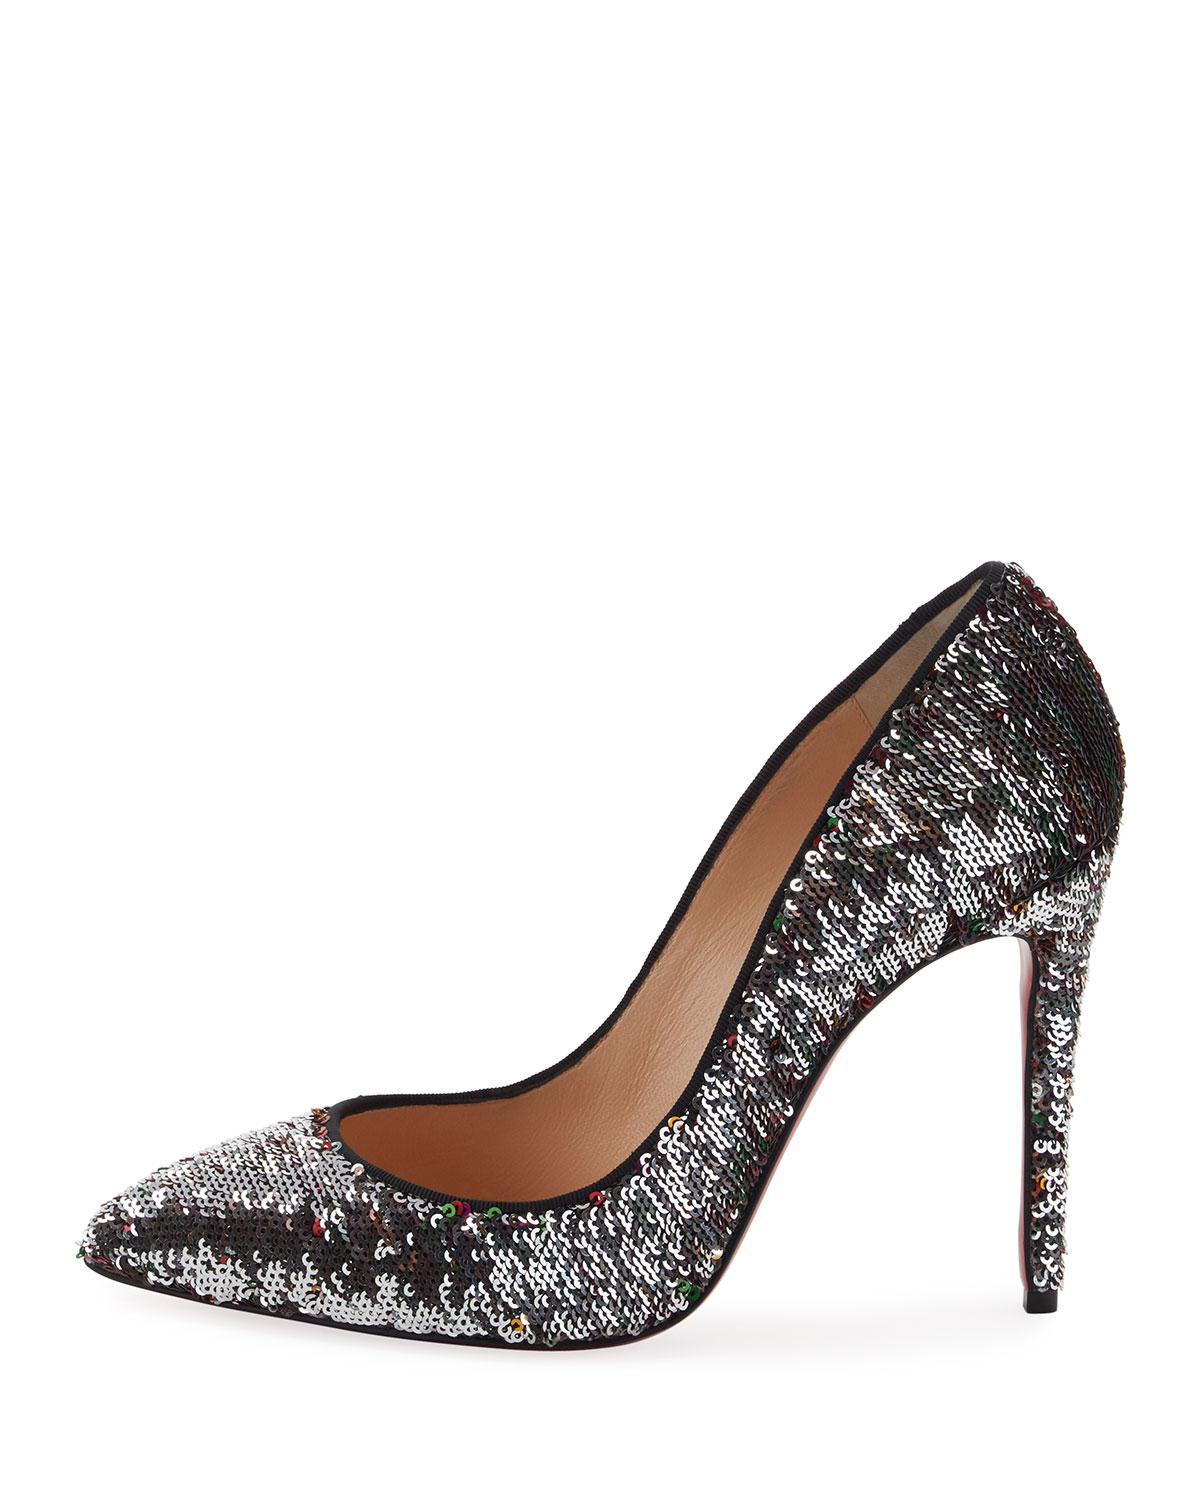 580026b6a86 Lyst - Christian Louboutin Pigalle Follies 100 in Black